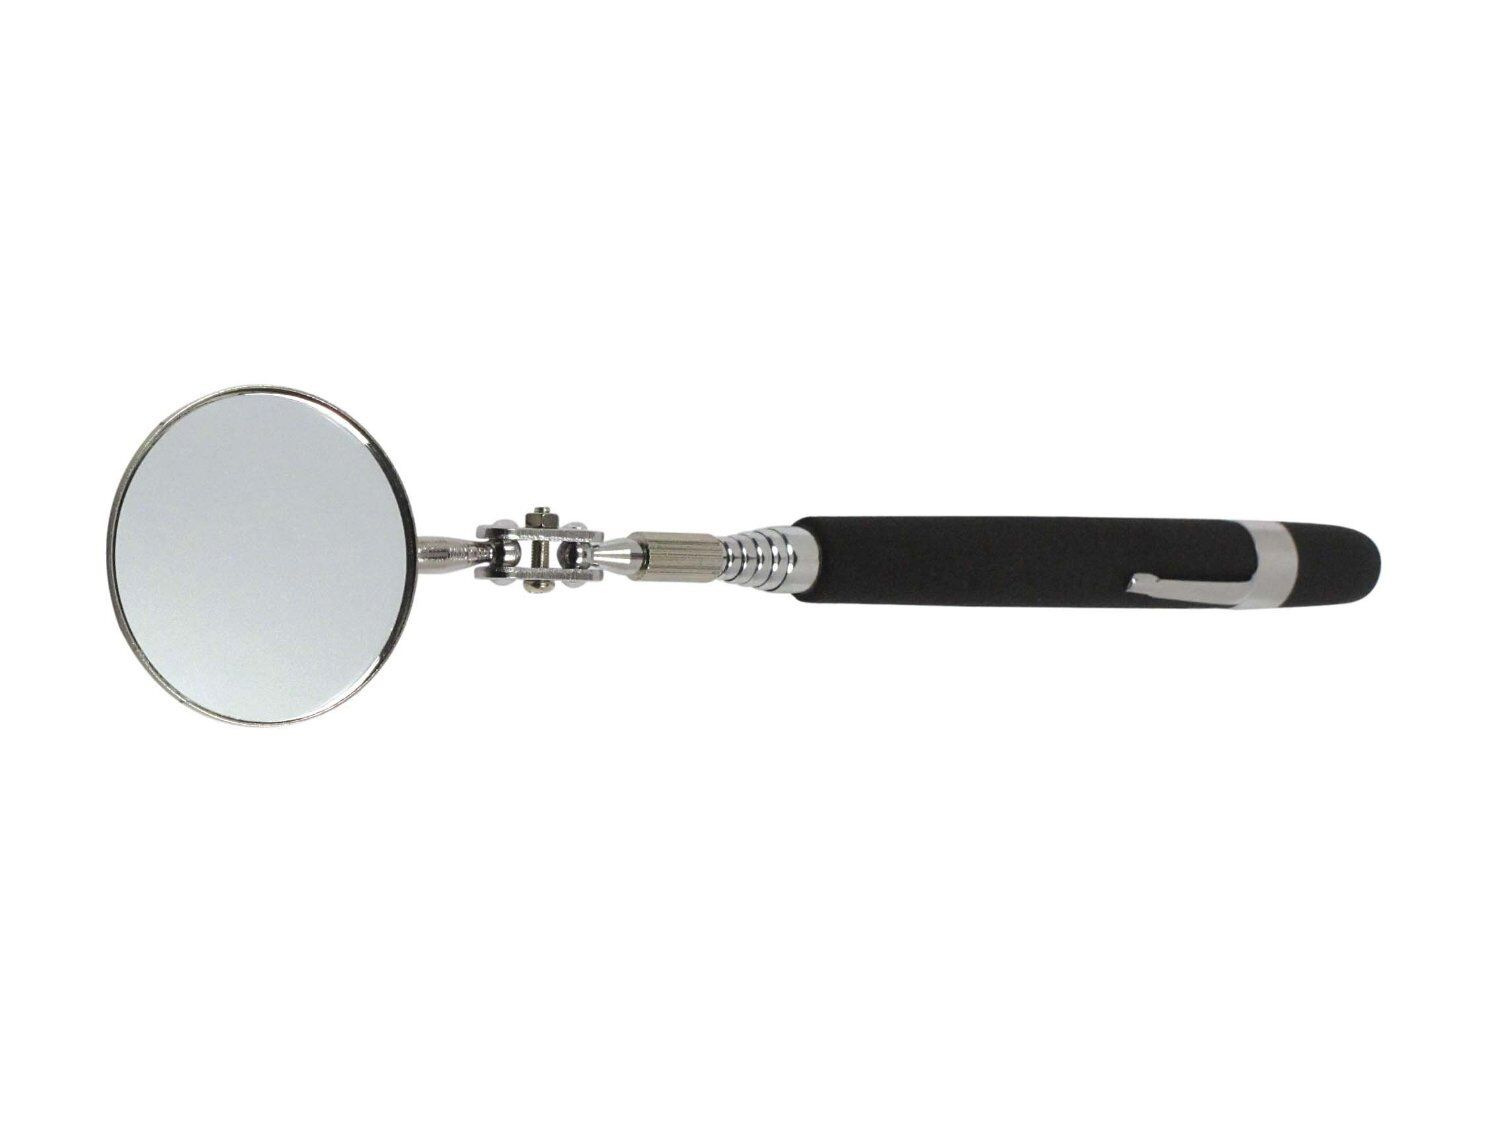 Adjule 2 Inspection Mirror For Viewing Hard To See Work Areas The Cushion Grip Handle A Comfortable Hold And Extends Up 36 Long